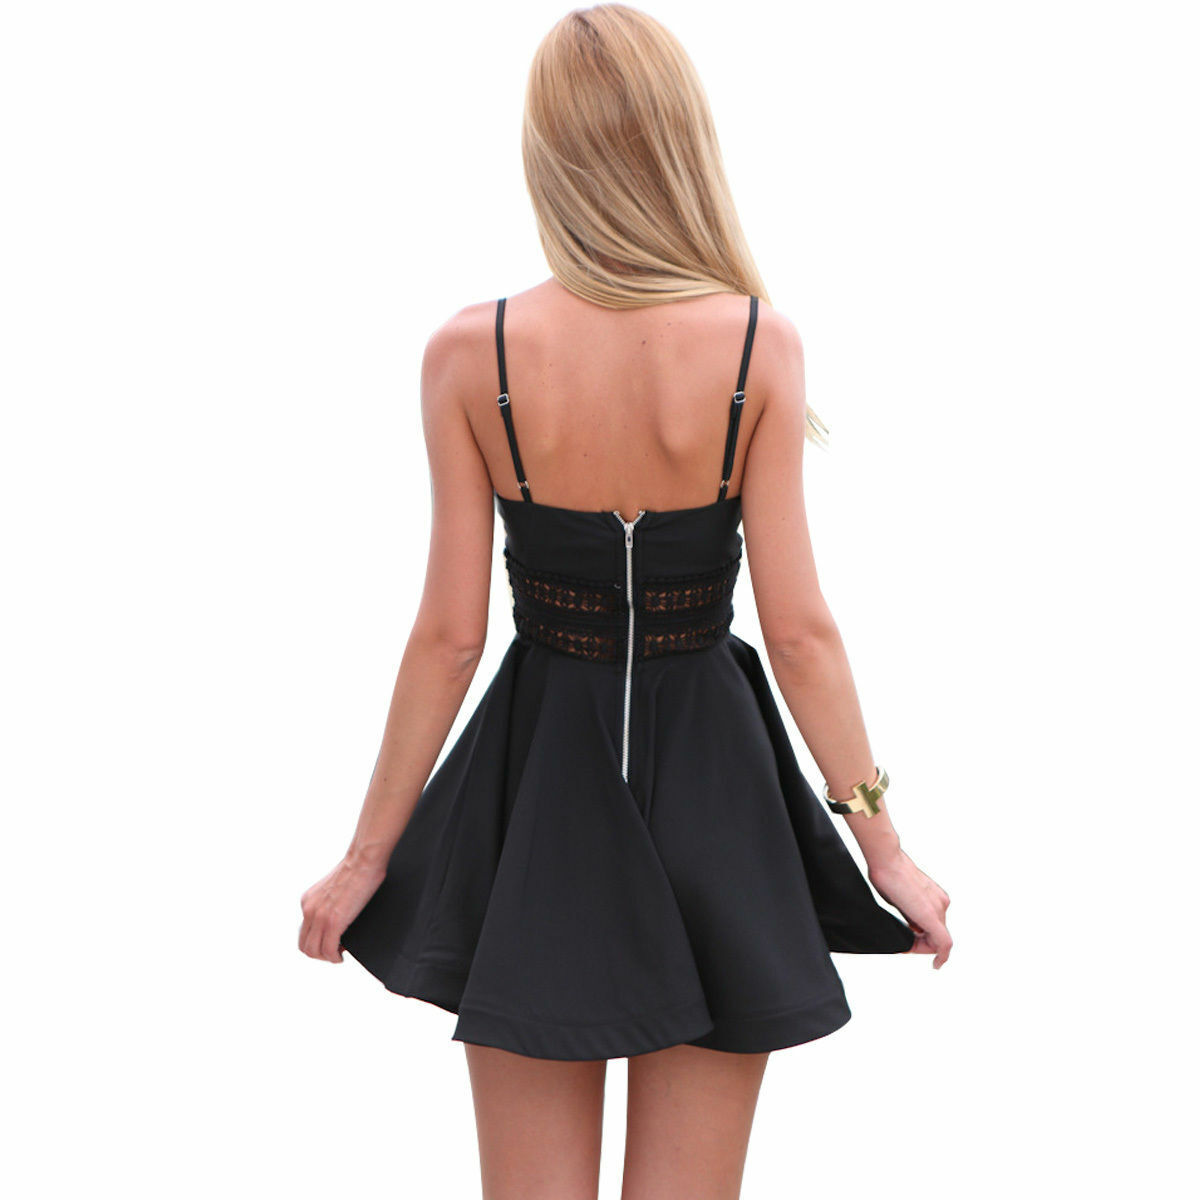 Sexy Women Summer Casual Sleeveless Evening Party Cocktail Short Mini Dress US Clothing, Shoes & Accessories